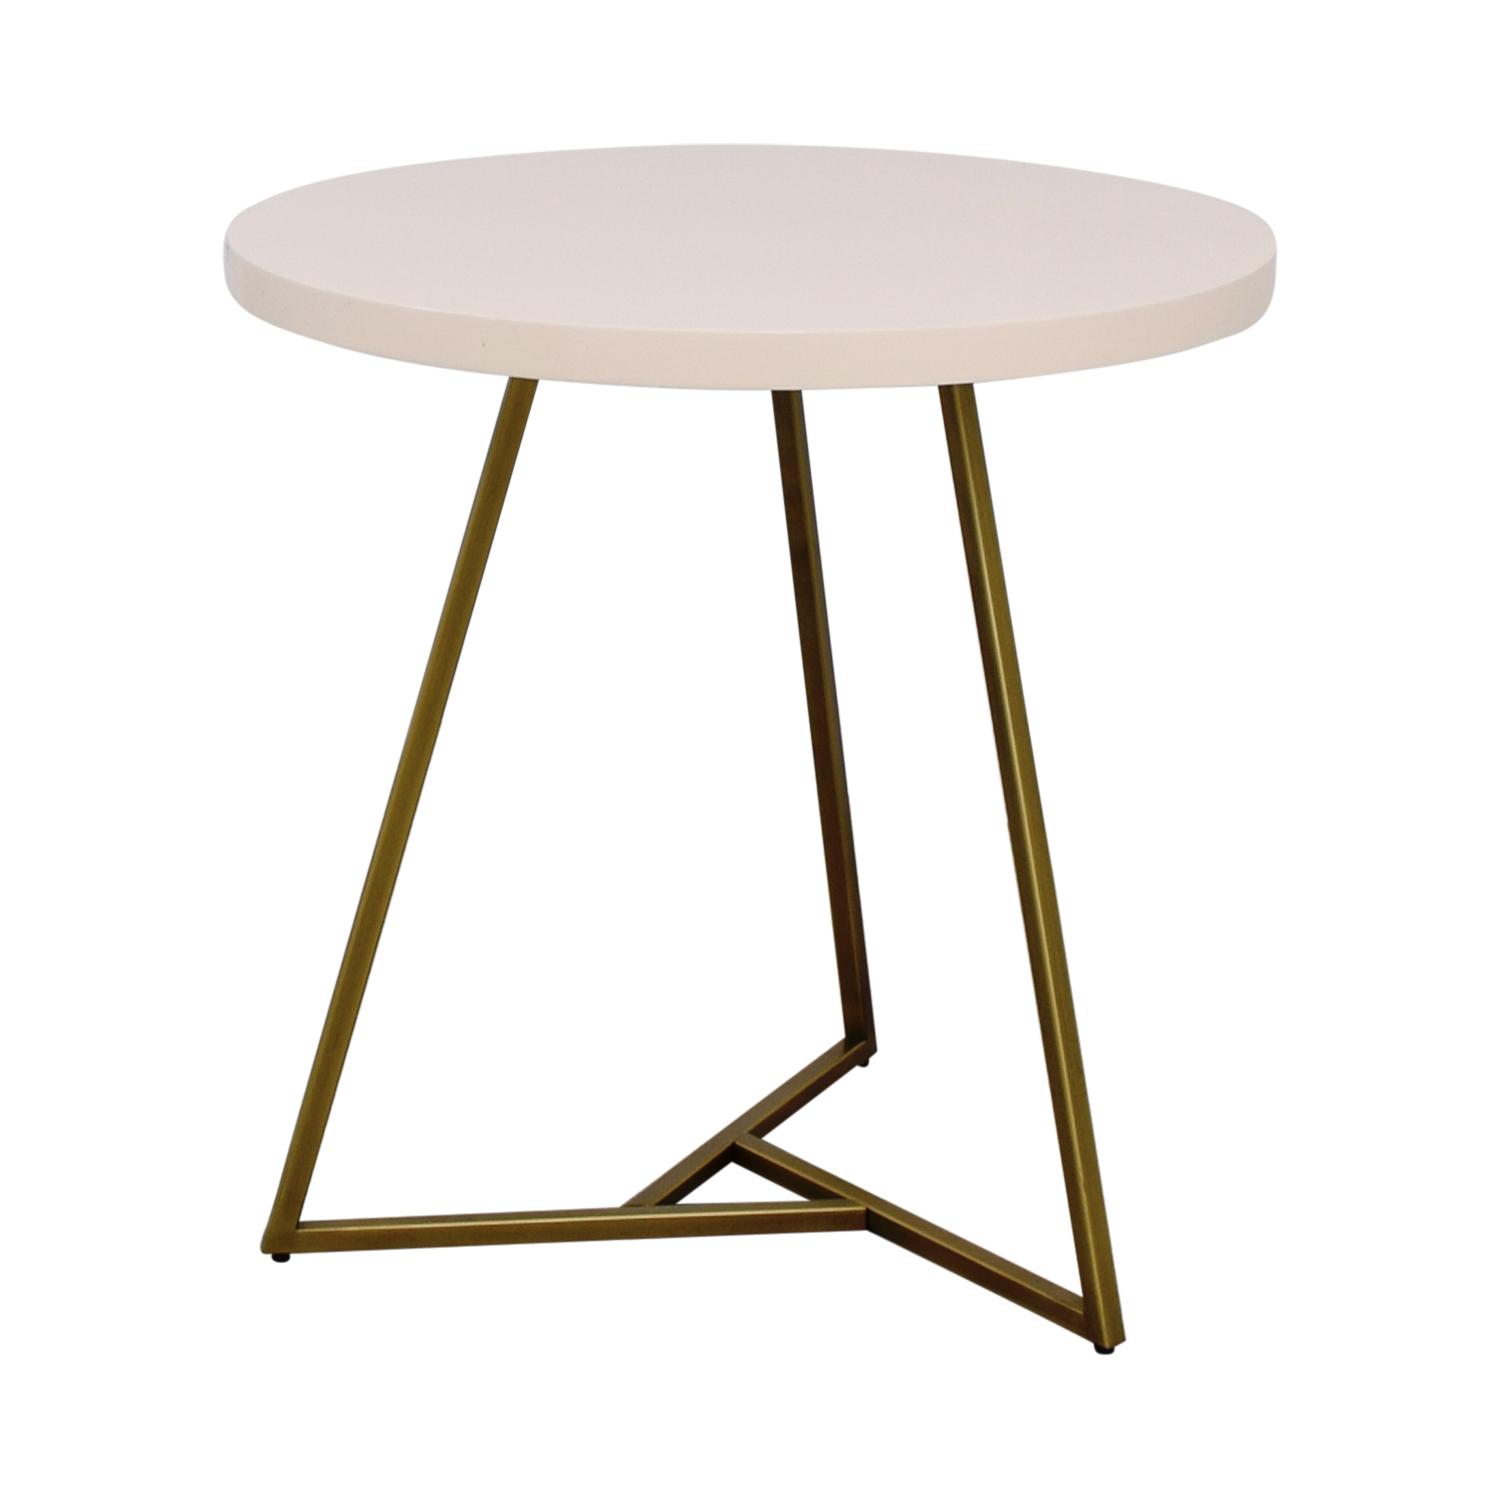 OFF West Elm West Elm White And Brass Cafe Table Tables - West elm cafe table